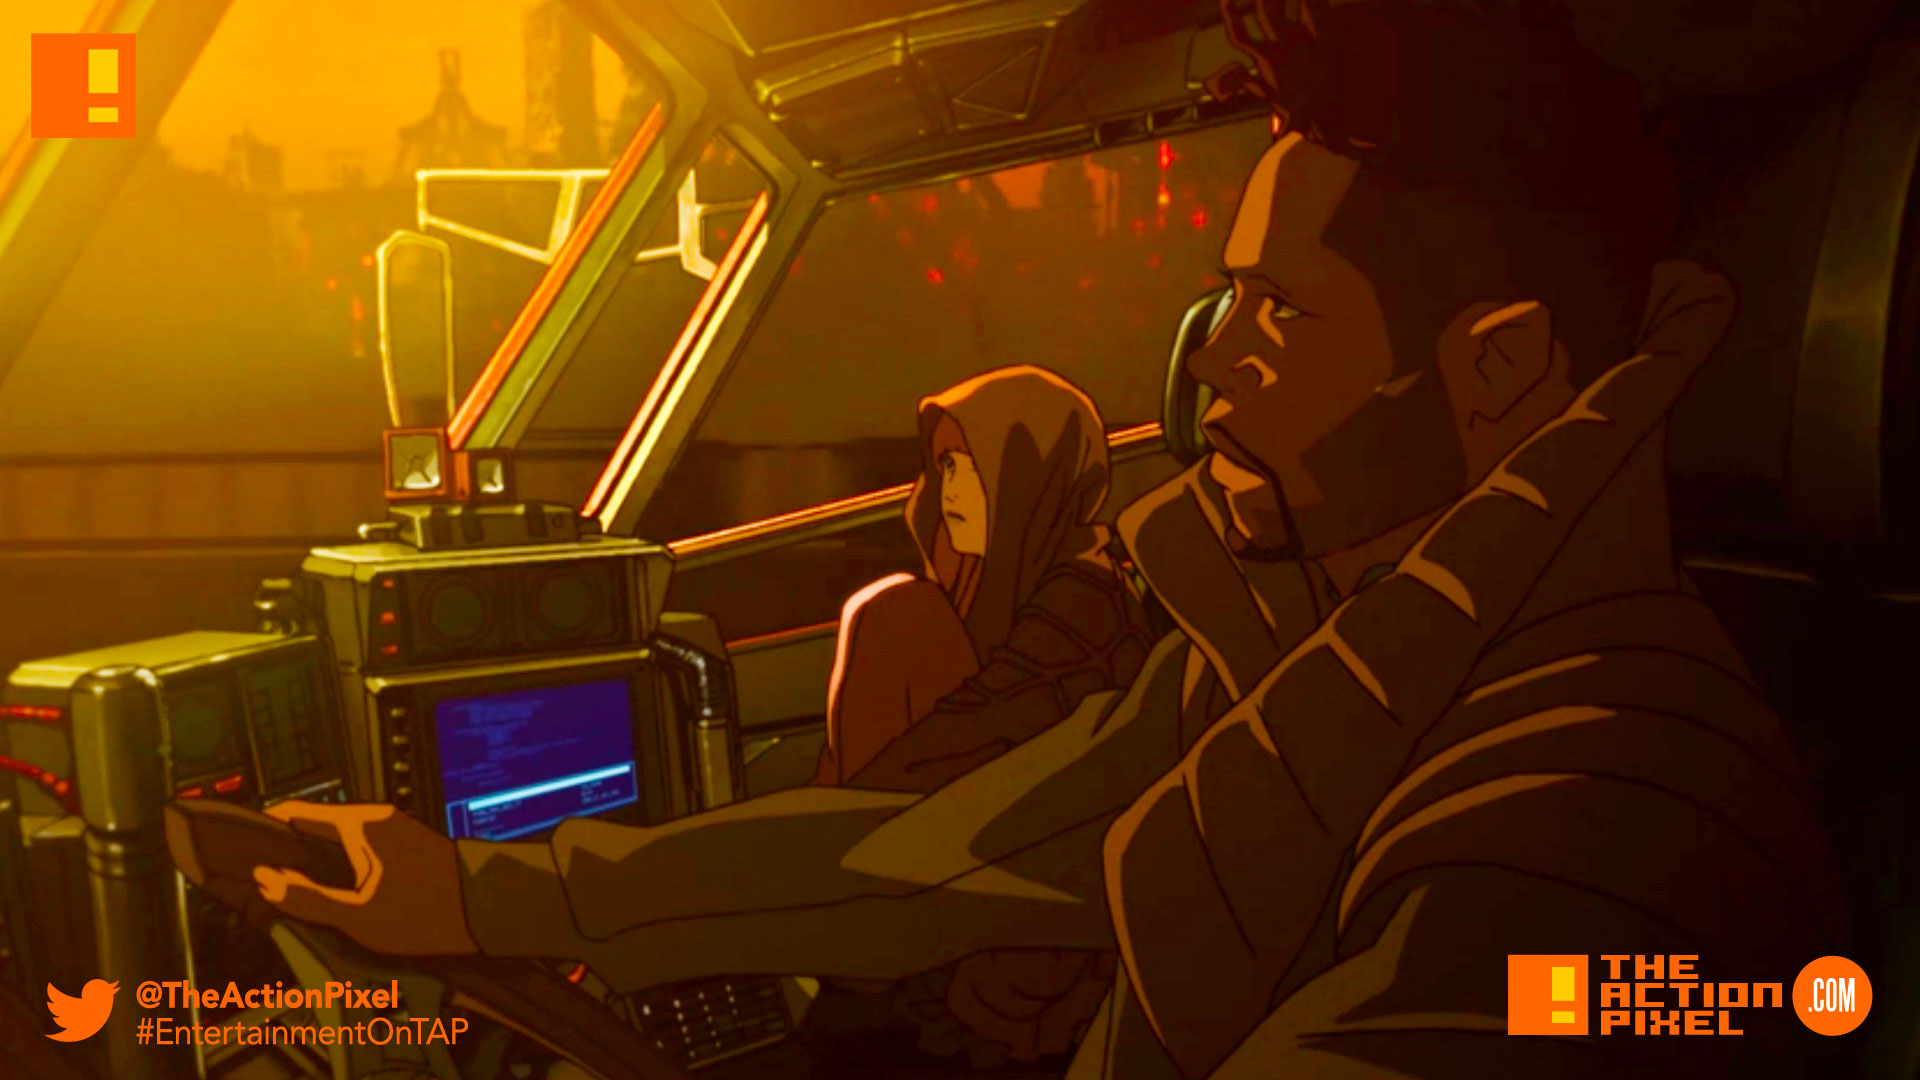 n 2022, an EMP detonation has caused a global blackout that has massive, destructive implications all over the world. Directed by Cowboy Bebop and Samurai Champloo's Shinichiro Watanabe, Blade Runner Black Out 2022 is a new and highly-anticipated animated short which serves as a prologue for the upcoming..., bladerunner , Bladerunner Black Out 2022, dave bautista, blade runner 2049, ryan gosling, harrison ford, trailer, sony, columbia, icon, warner bros. entertainment , the action pixel, entertainment on tap, rick deckard,blade runner,poster, teaser, warner bros, columbia,ridley scott, poster, character posters